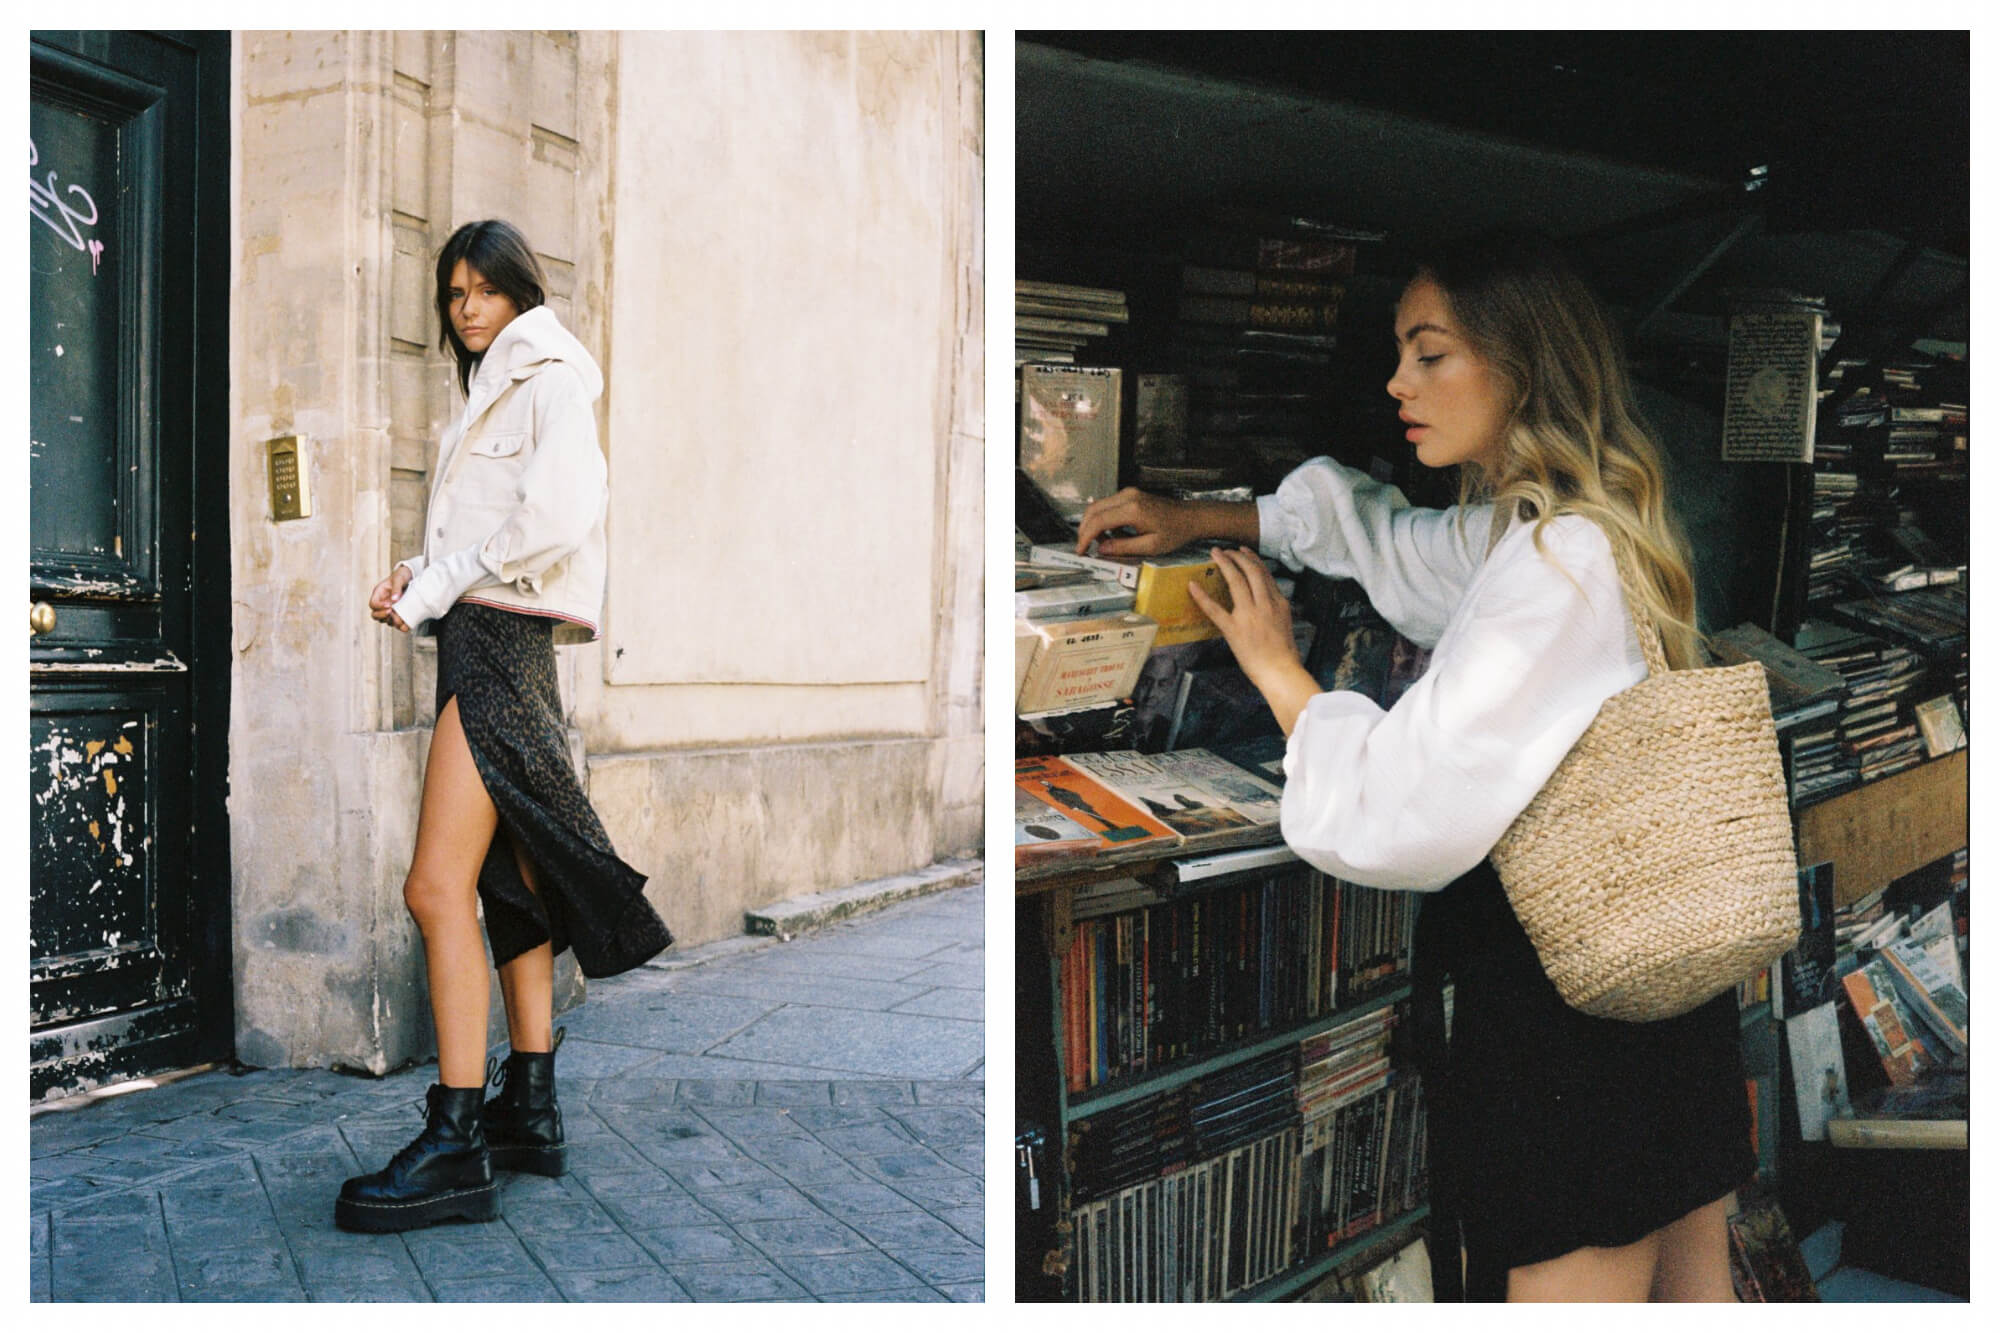 Left: a girl standing on a Parisian footpath in front of a door to a building. She's wearing a dress with a jacket and black chunky boots. Right: a girl looking through the books of a bookseller on the Seine in Paris. She's wearing a white shirt and is carrying a straw shoulder bag.